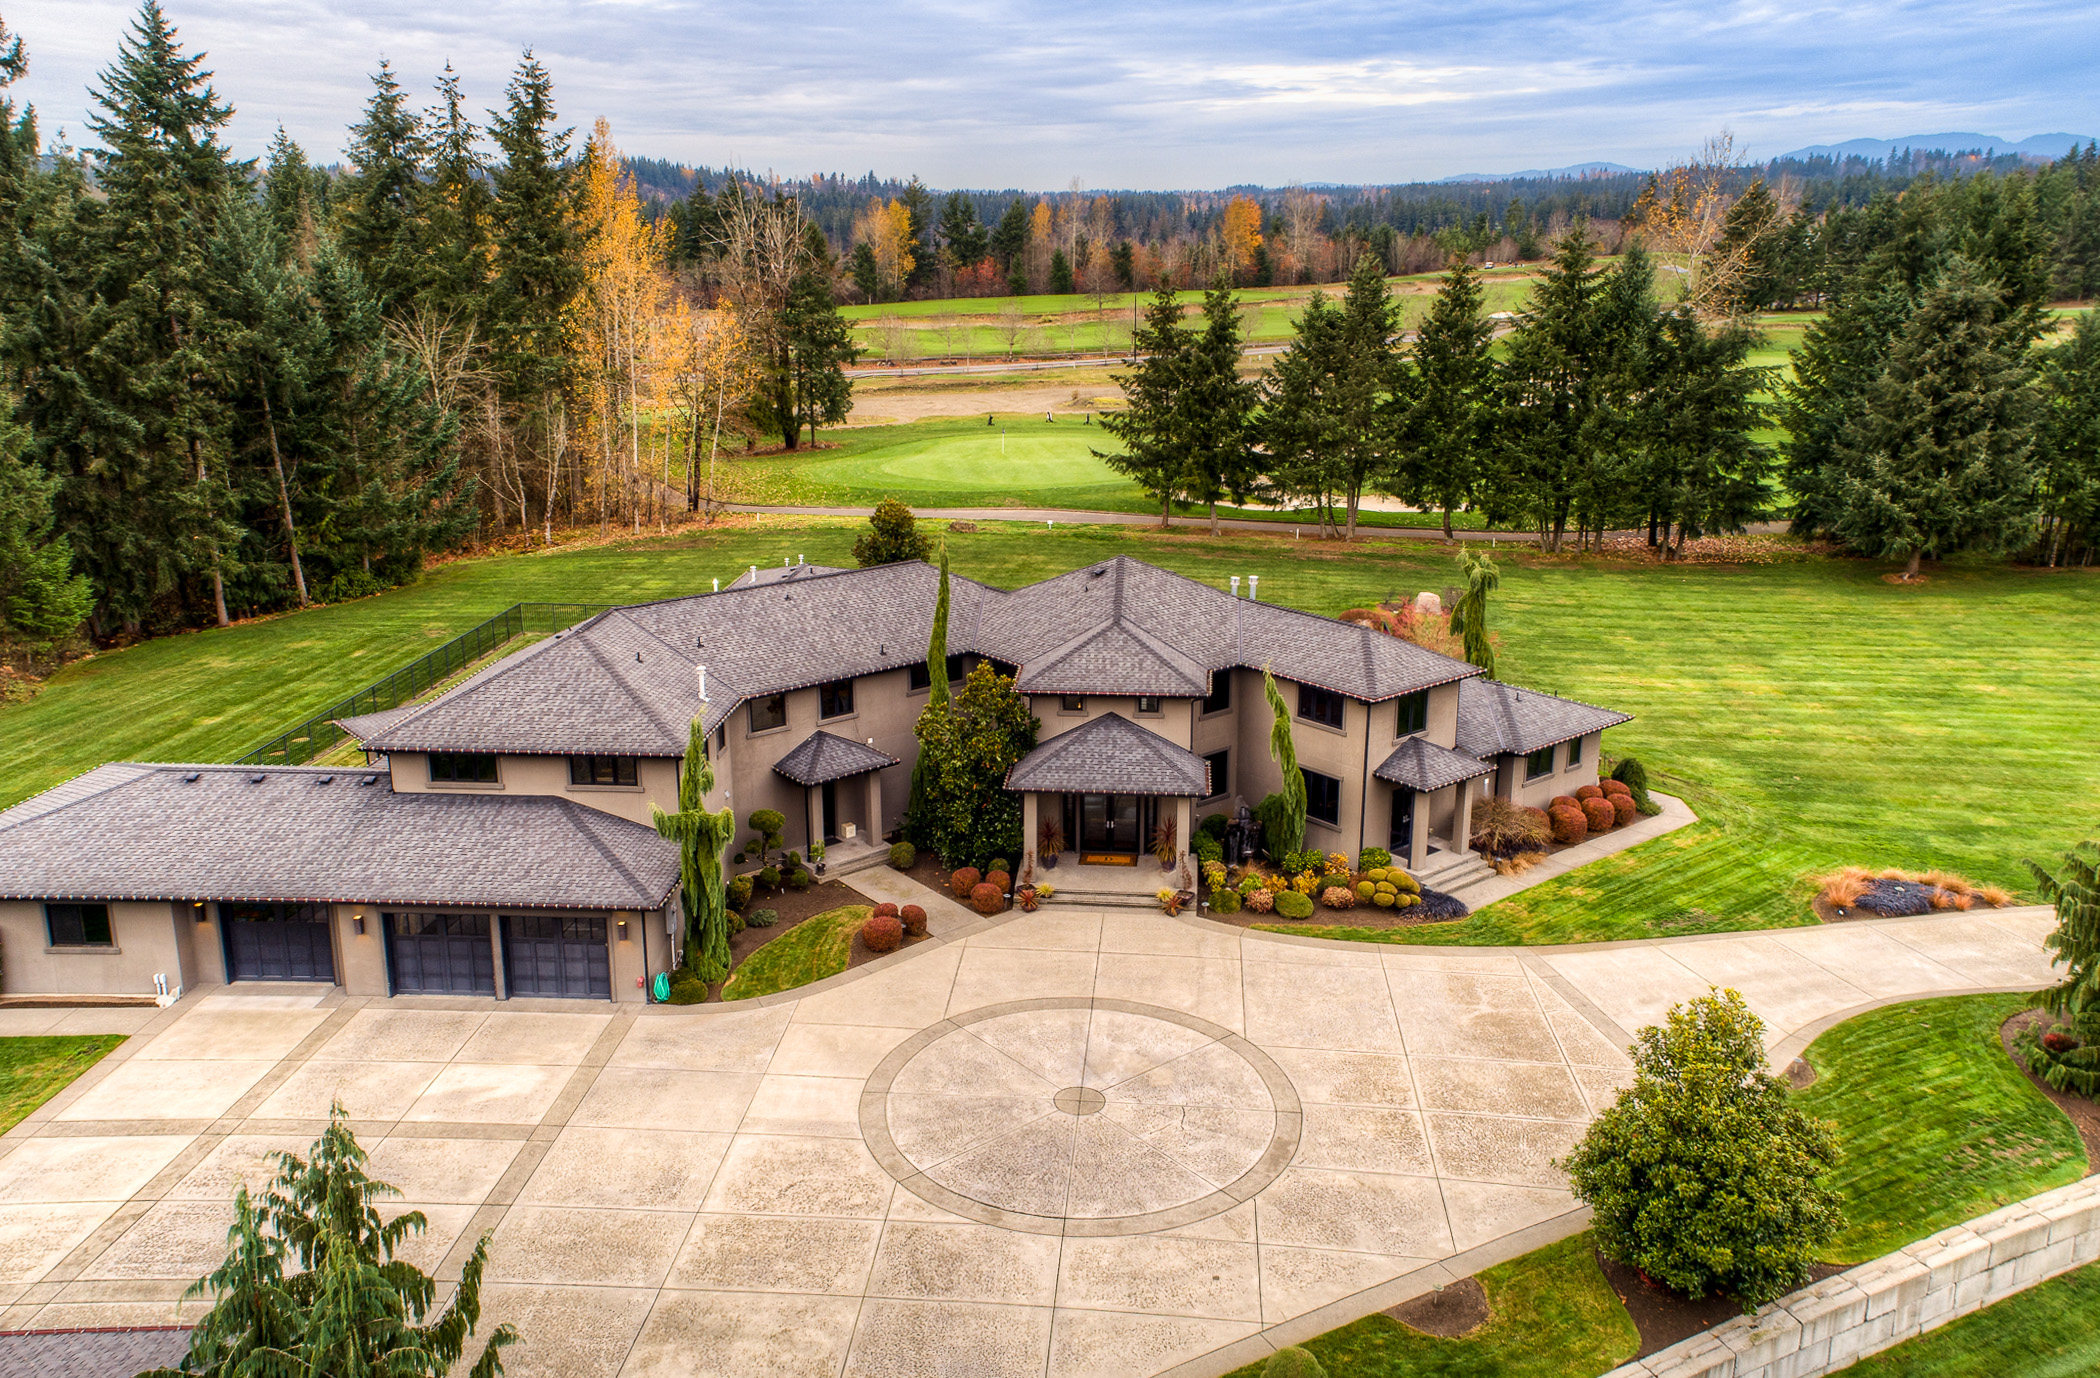 "Golf fans, what do you think about NO commute to the course?? This beautiful home sits on 3.32 acres bordering the 4th fairway of the Washington National Golf course. At 6,600 square feet with 4 beds, 5.25 baths - this home is listed for $2,145,000. No expense was spared with top of the line materials, appliances and upgrades inside and out! Listed by Jill Trinh of Better Properties Solutions you can find this listing online by searching{&nbsp;}<a  href=""https://www.muljatgroup.com/idx/mls-1390549-33507_143rd_place_se_auburn_wa_98092"" target=""_blank"" title=""https://www.muljatgroup.com/idx/mls-1390549-33507_143rd_place_se_auburn_wa_98092"">MLS 1390549</a>. (Image: Image Arts Productions)."